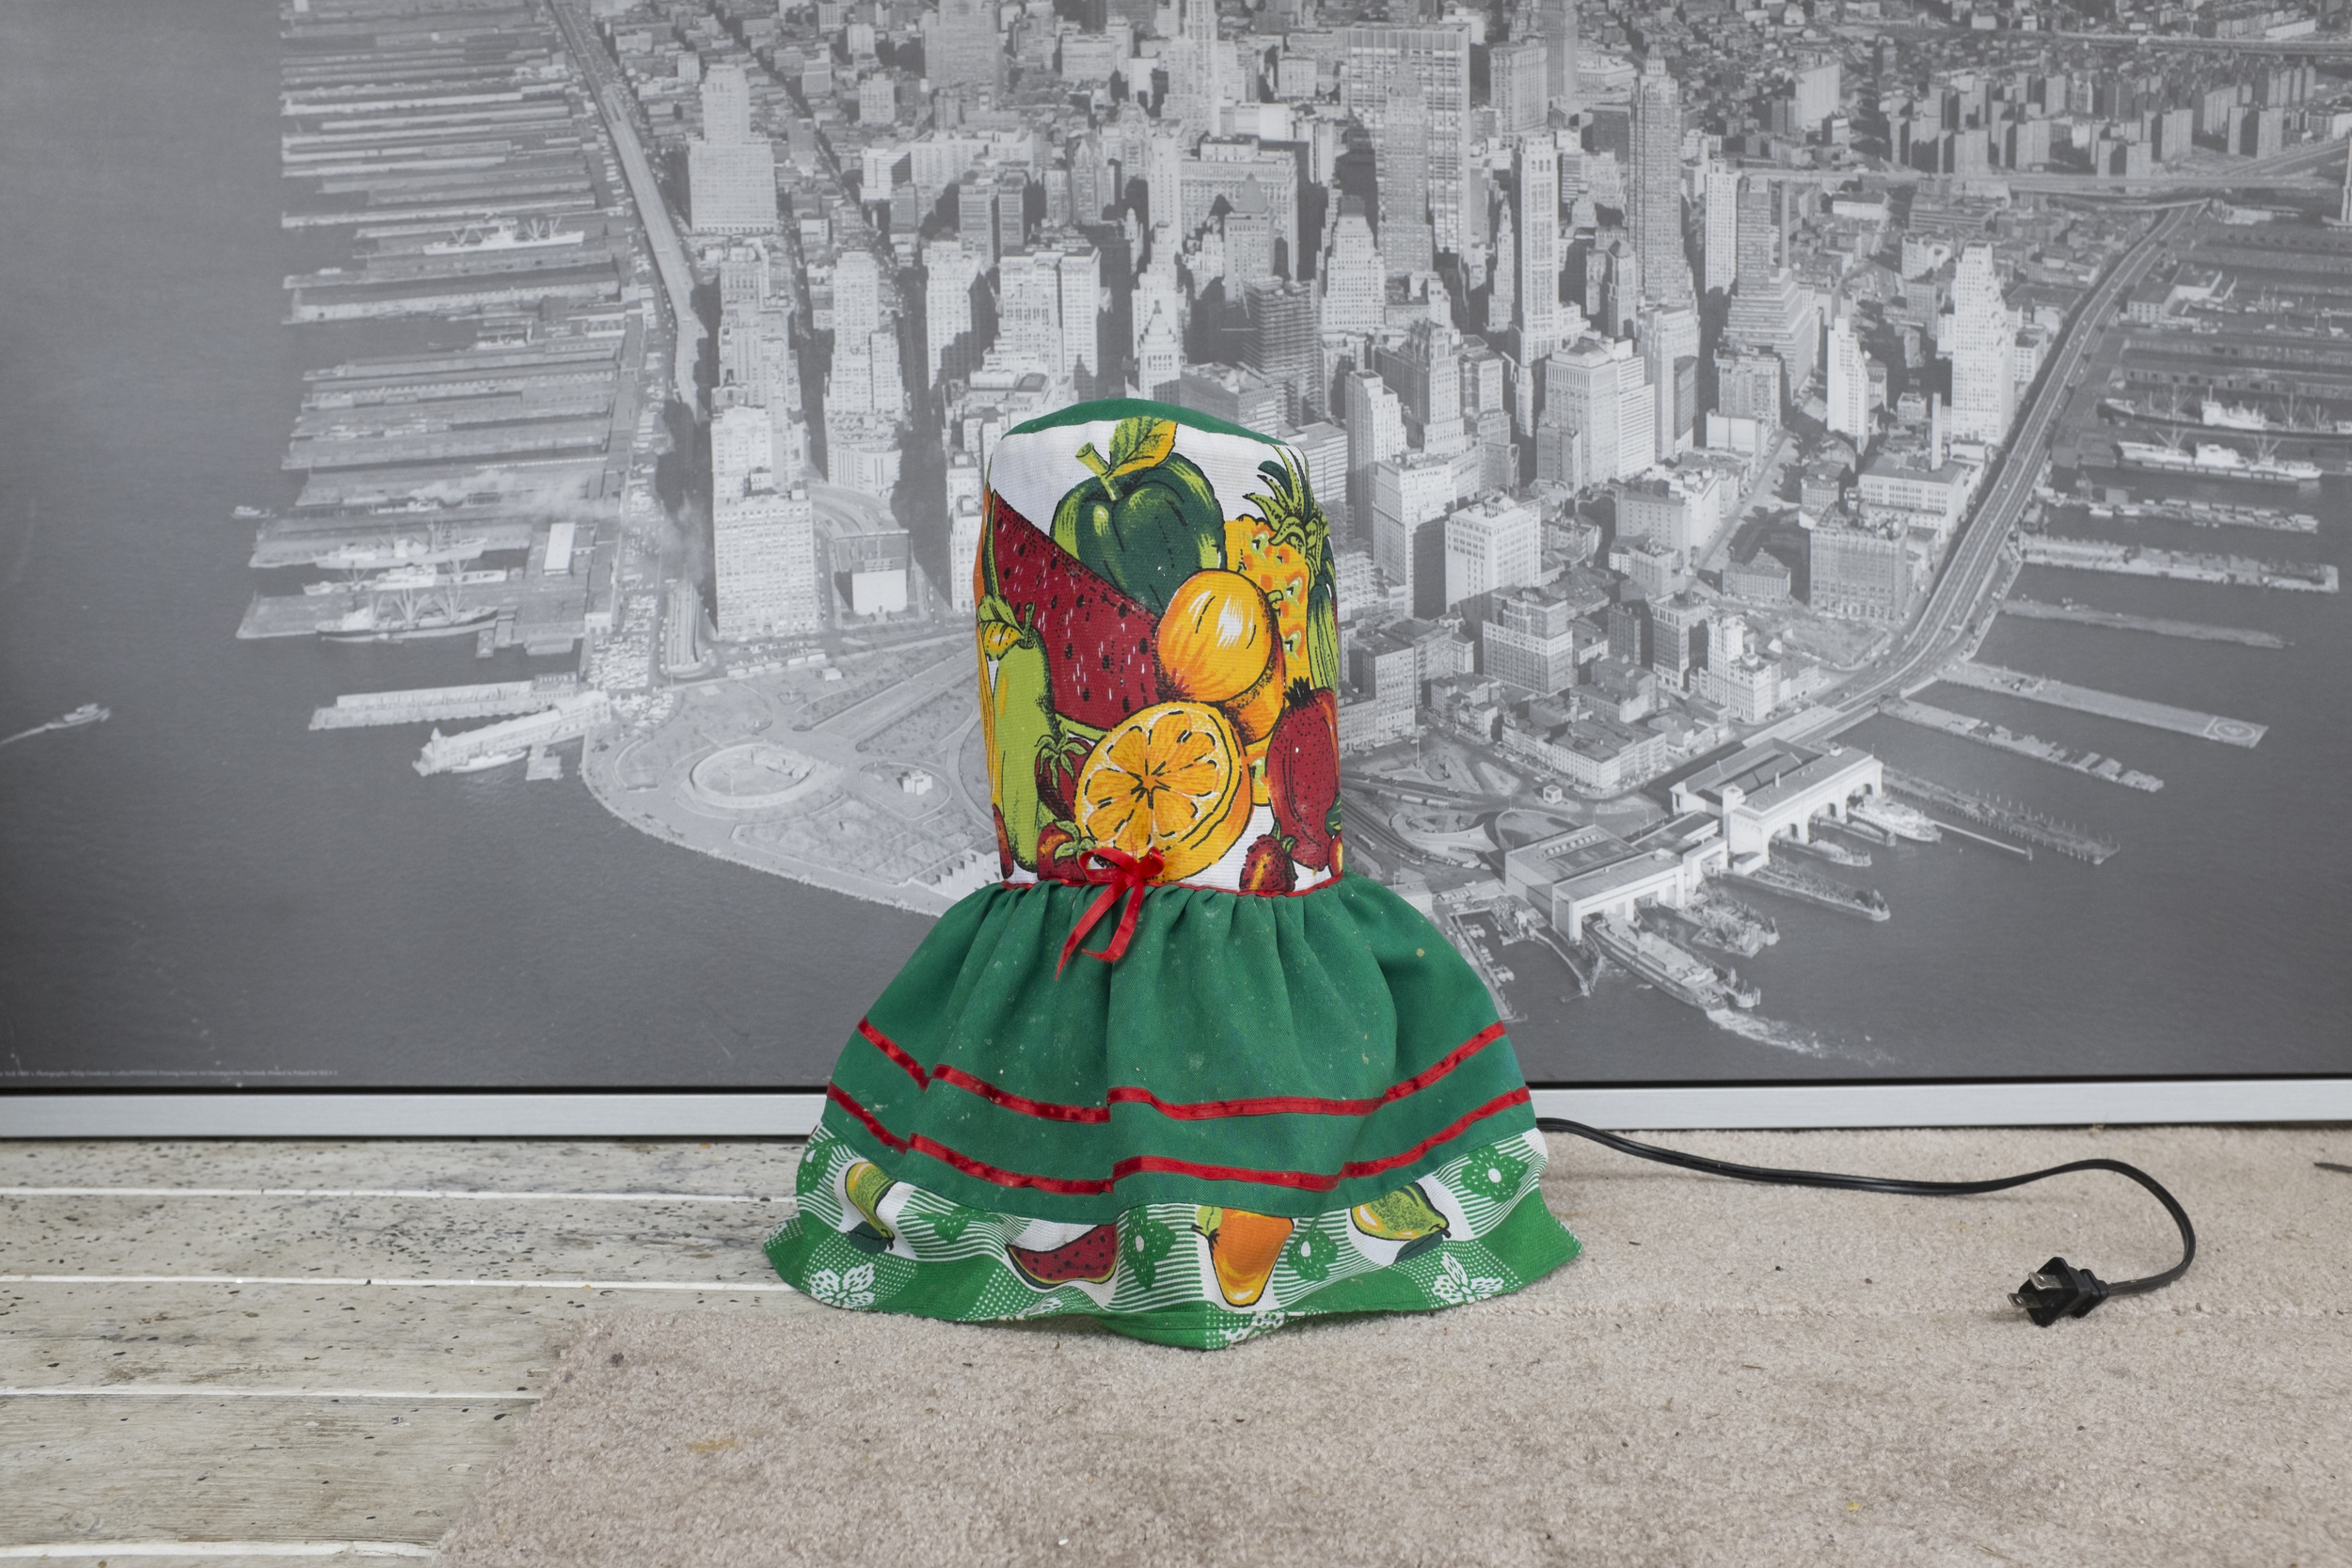 Salvadoran blender cover and photograph of New York City.